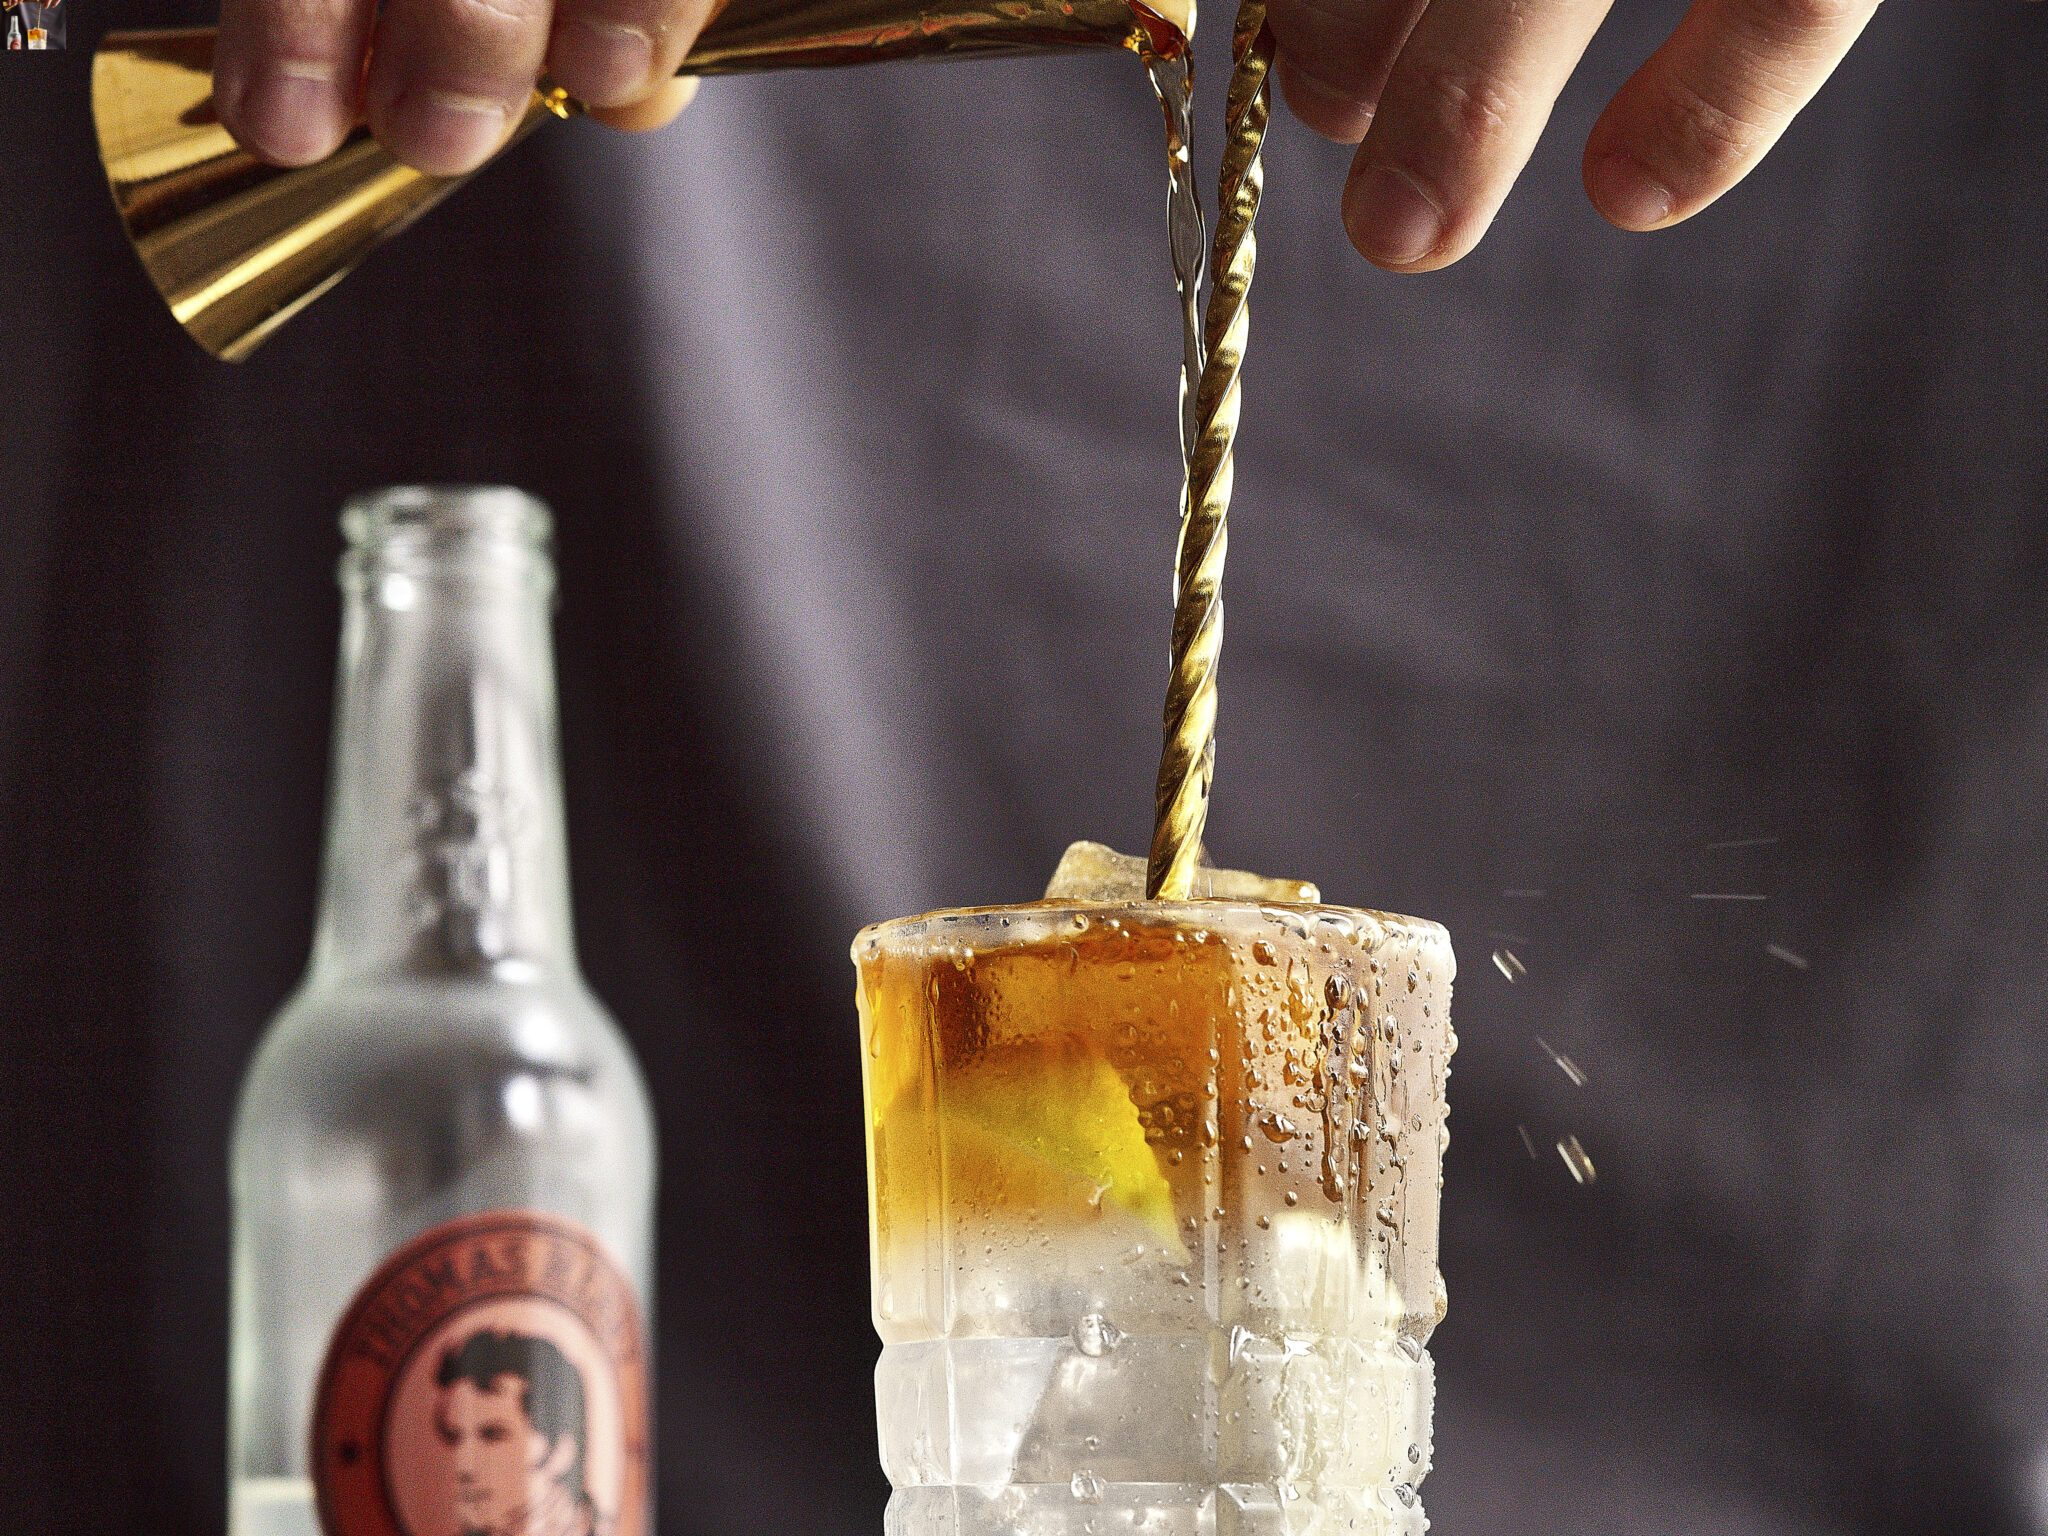 thomas henry darknstormy spicy ginger step03 mit produkt rum eingiessen 102678 highres